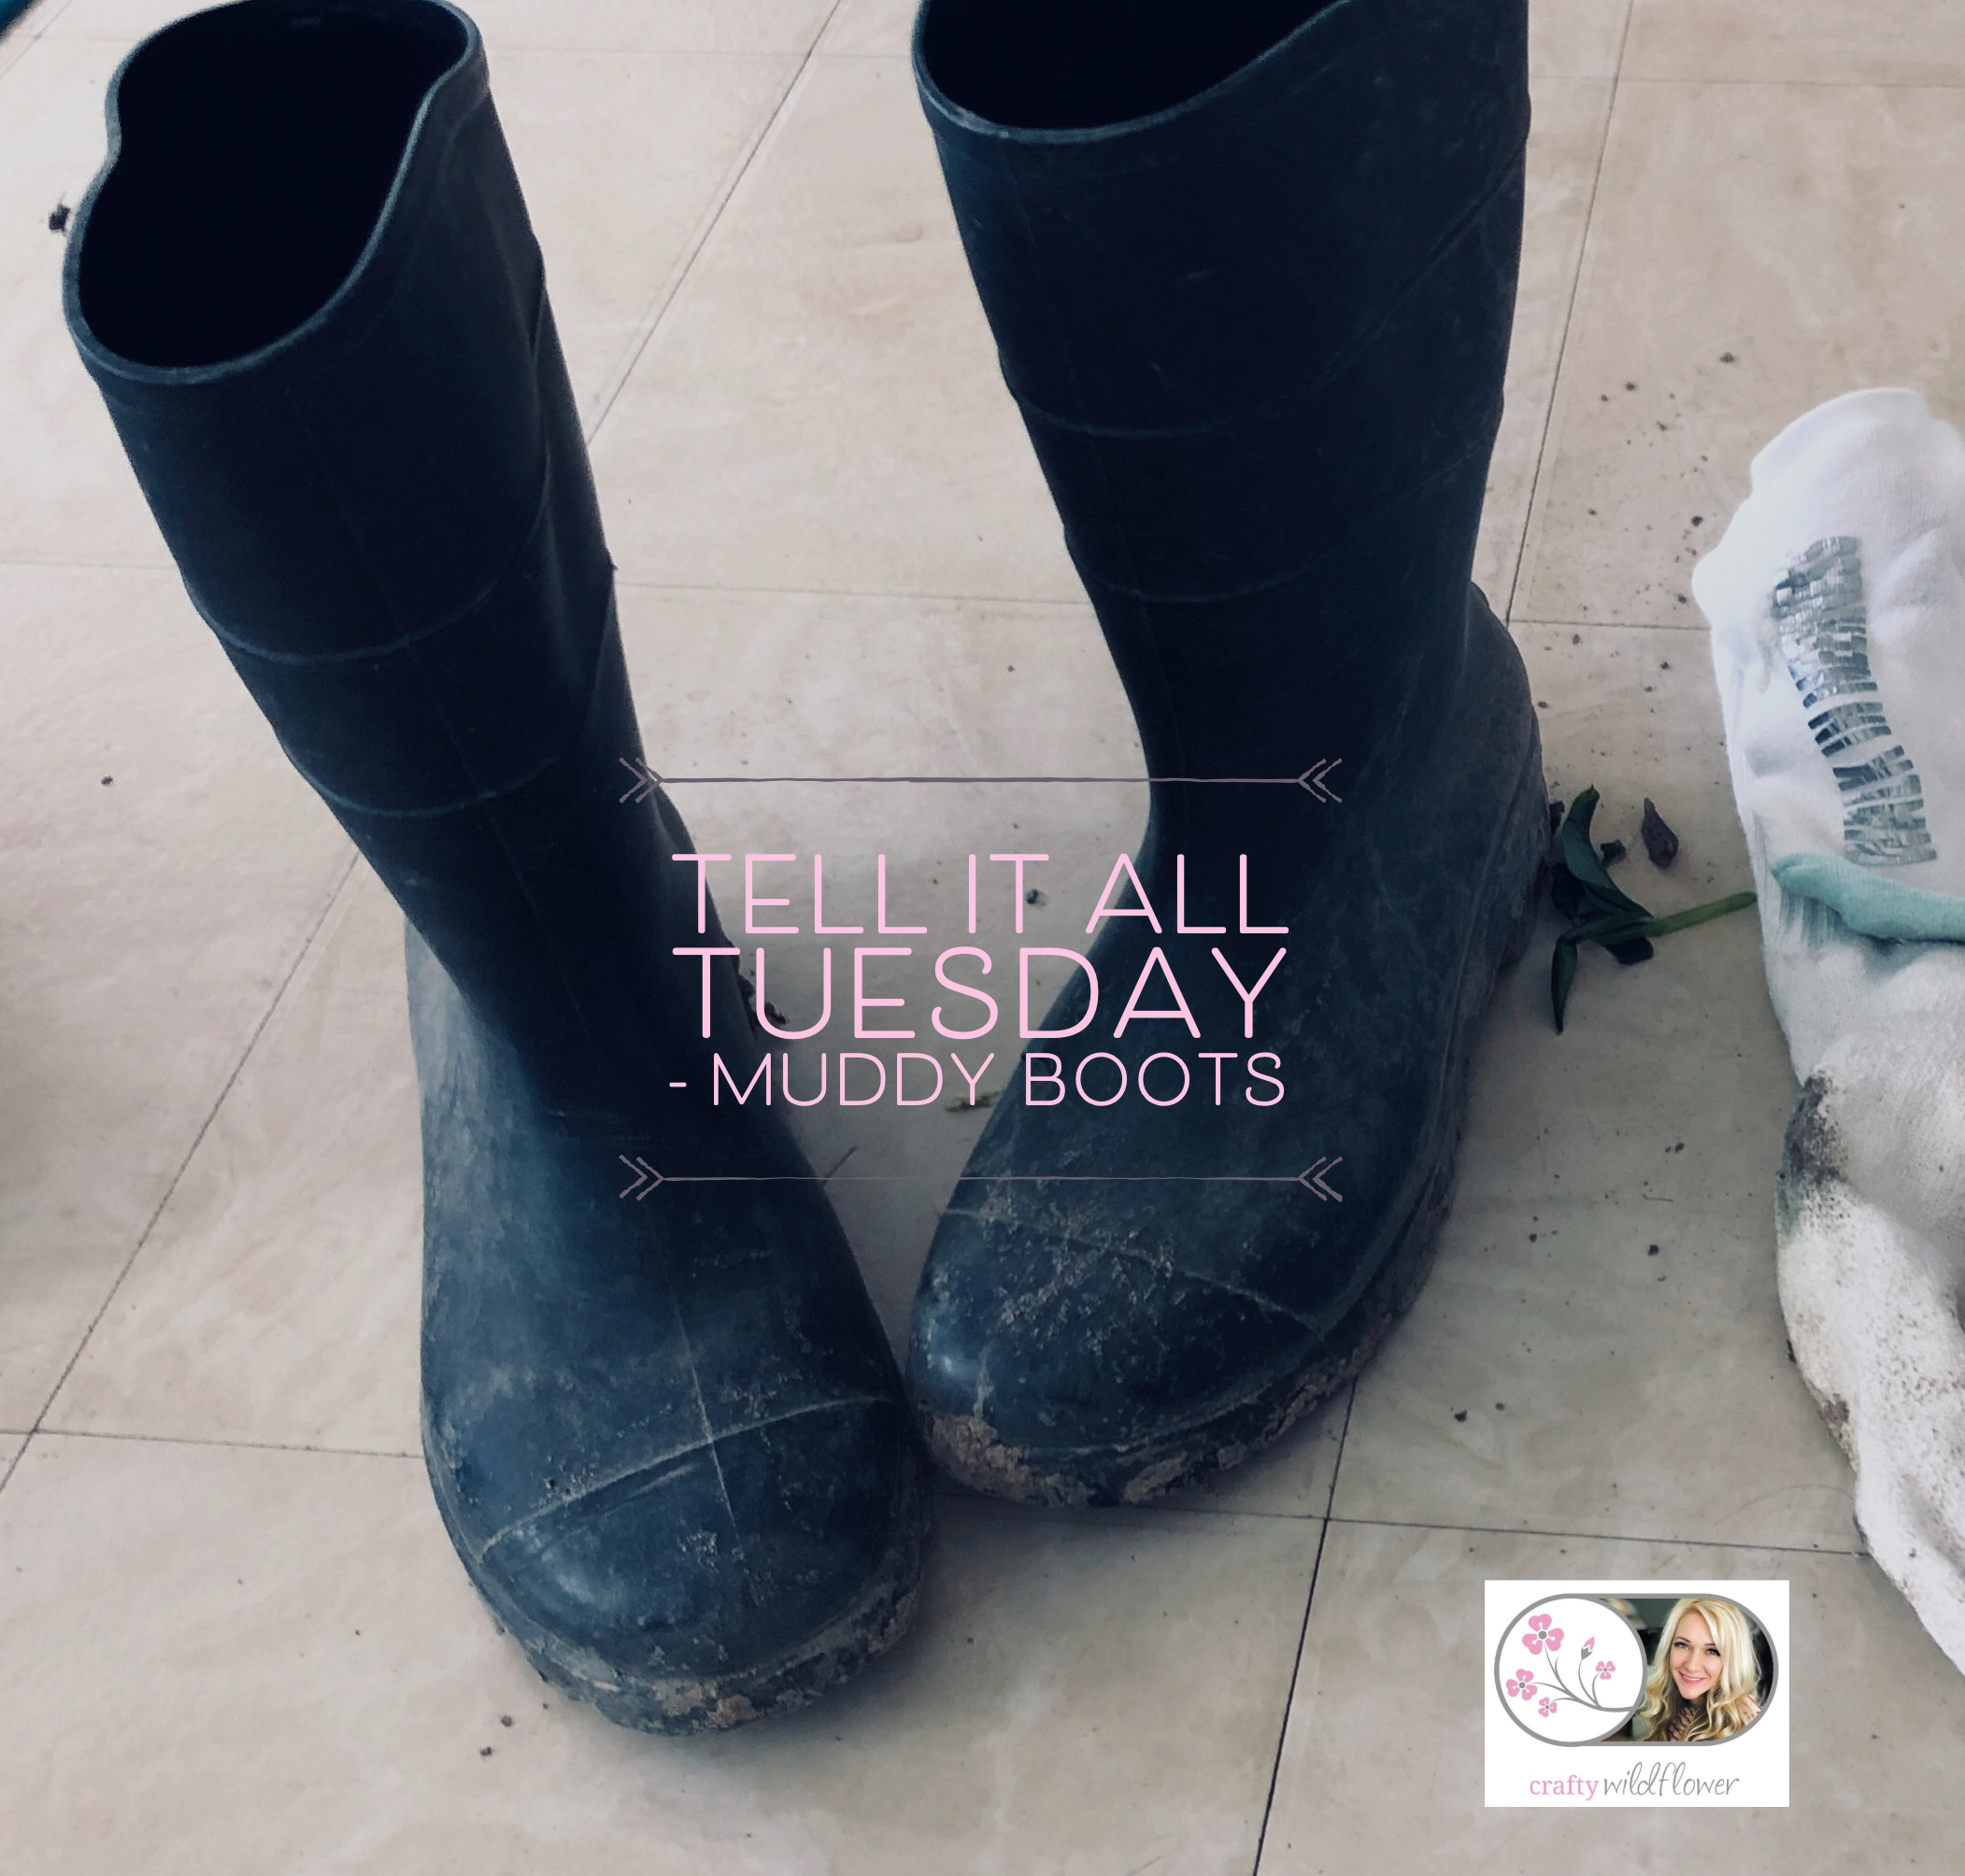 Tell it all Tuesday – Muddy Boots